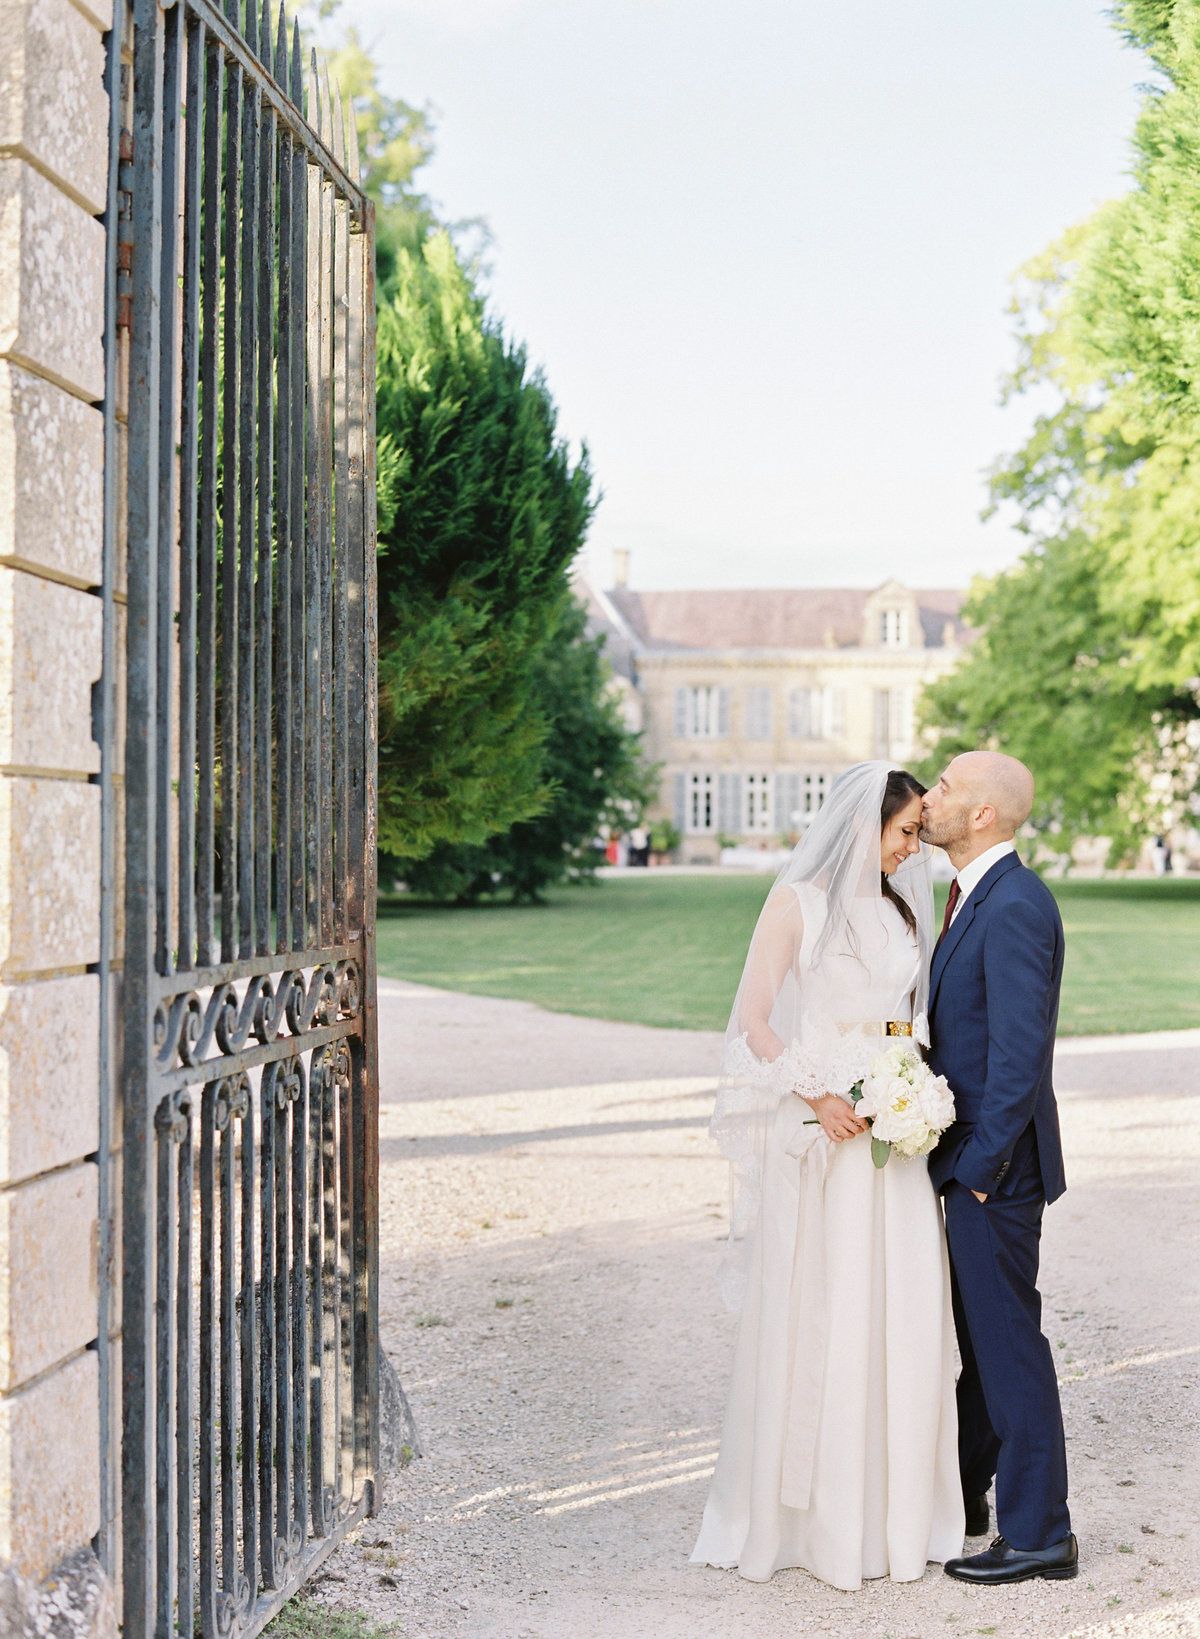 Intimate french champagne chateau wedding amelia soegijono0060